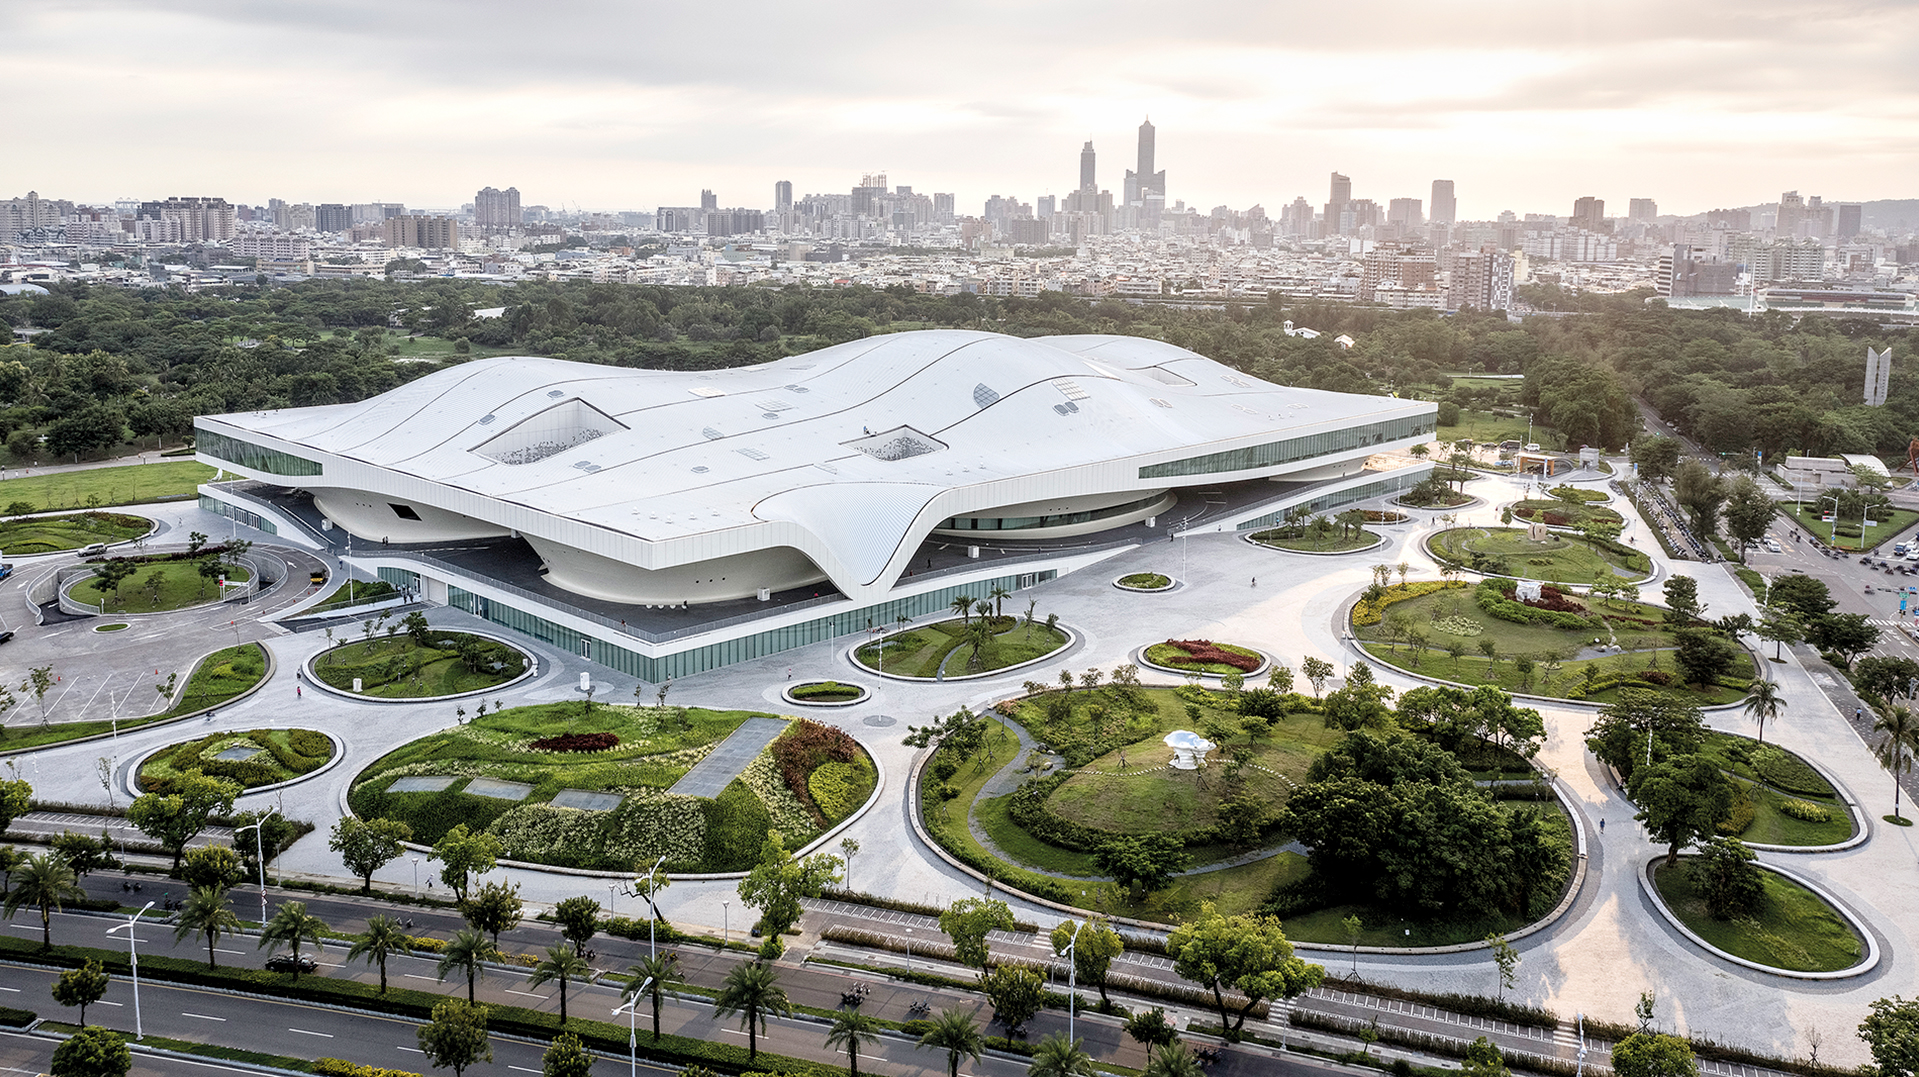 centre-national-des-arts-kaohsiung-taiwan-mecanoo-1